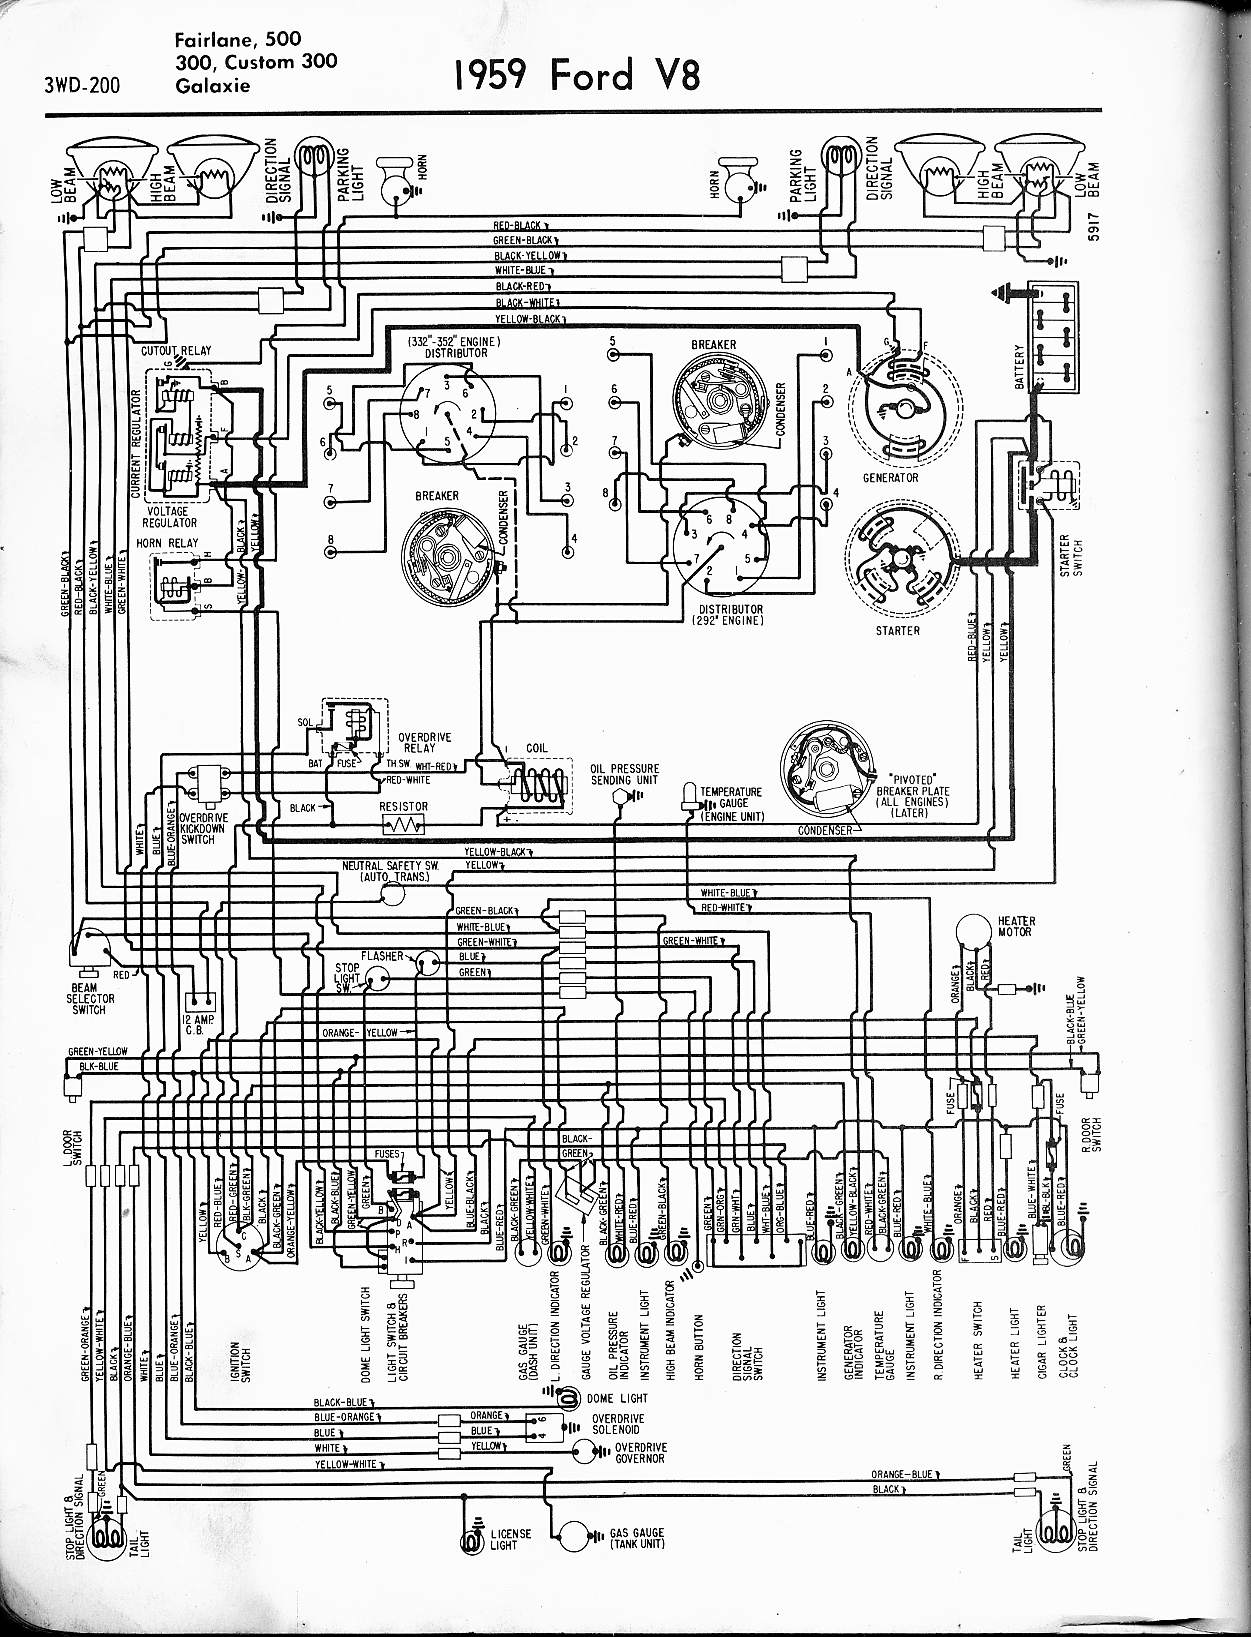 MWire5765 200 57 65 ford wiring diagrams 2002 F250 Wiring Diagram at gsmx.co